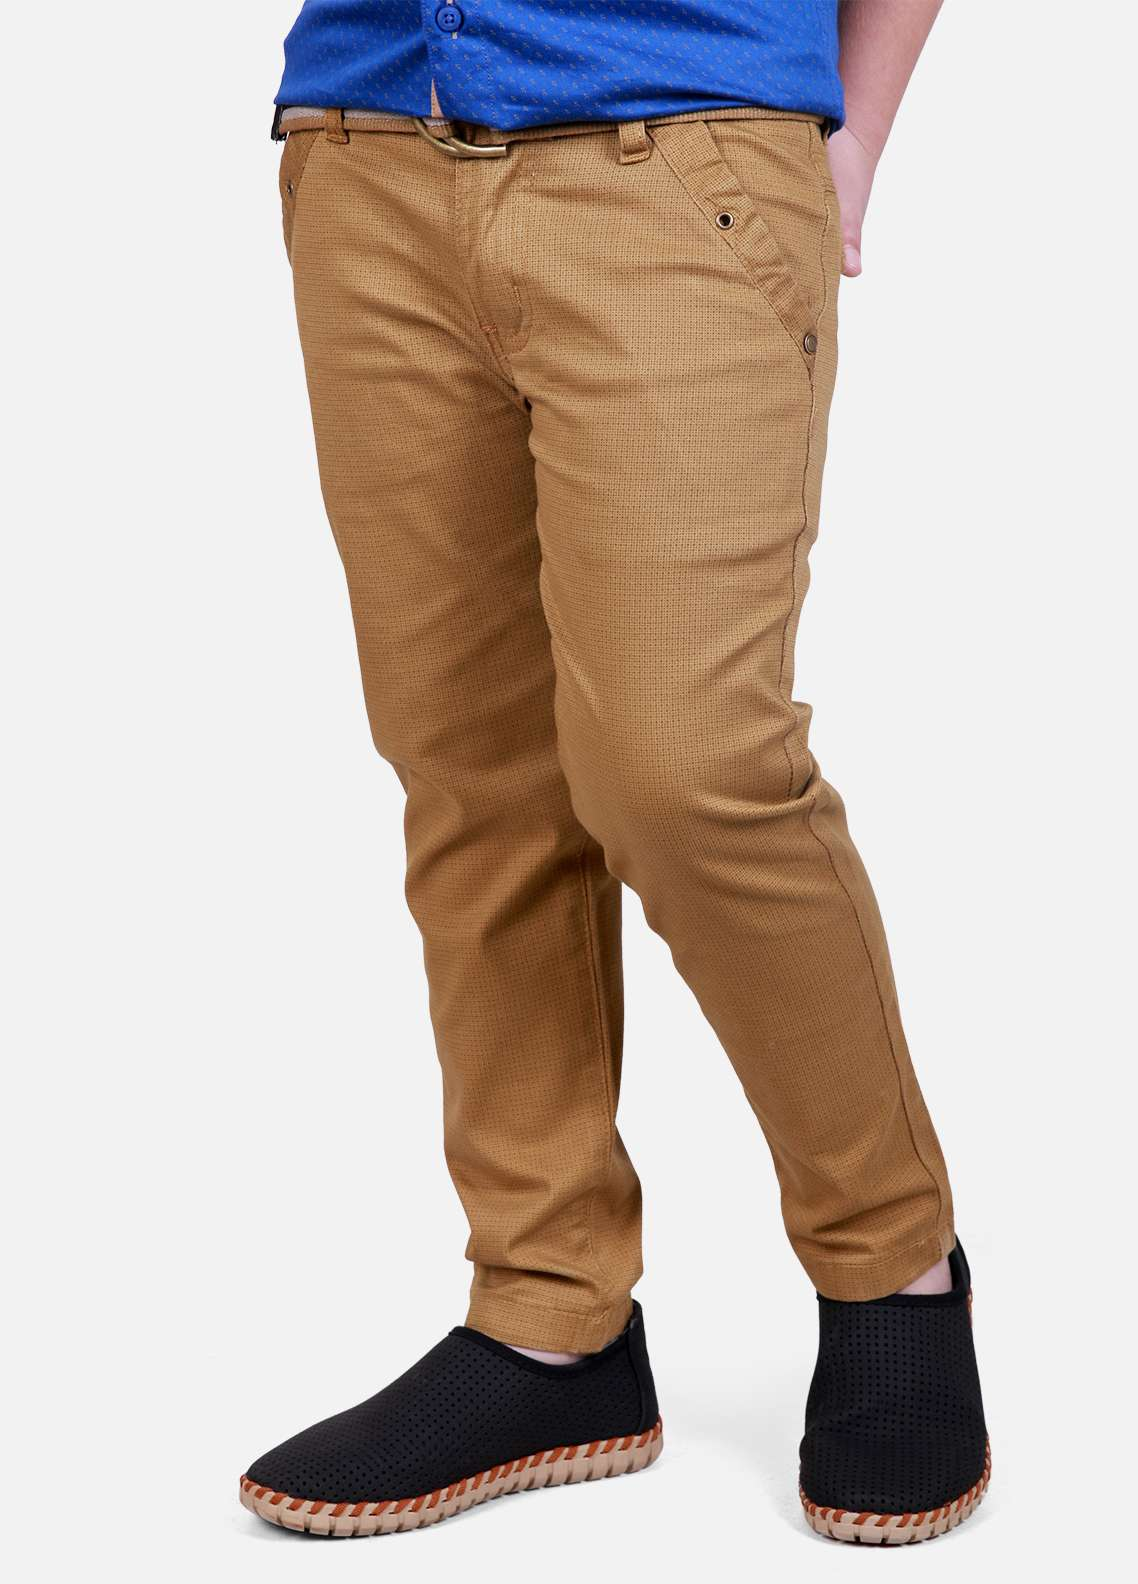 Edenrobe Cotton Plain Texture Boys Pants - Golden EDK18P 5702